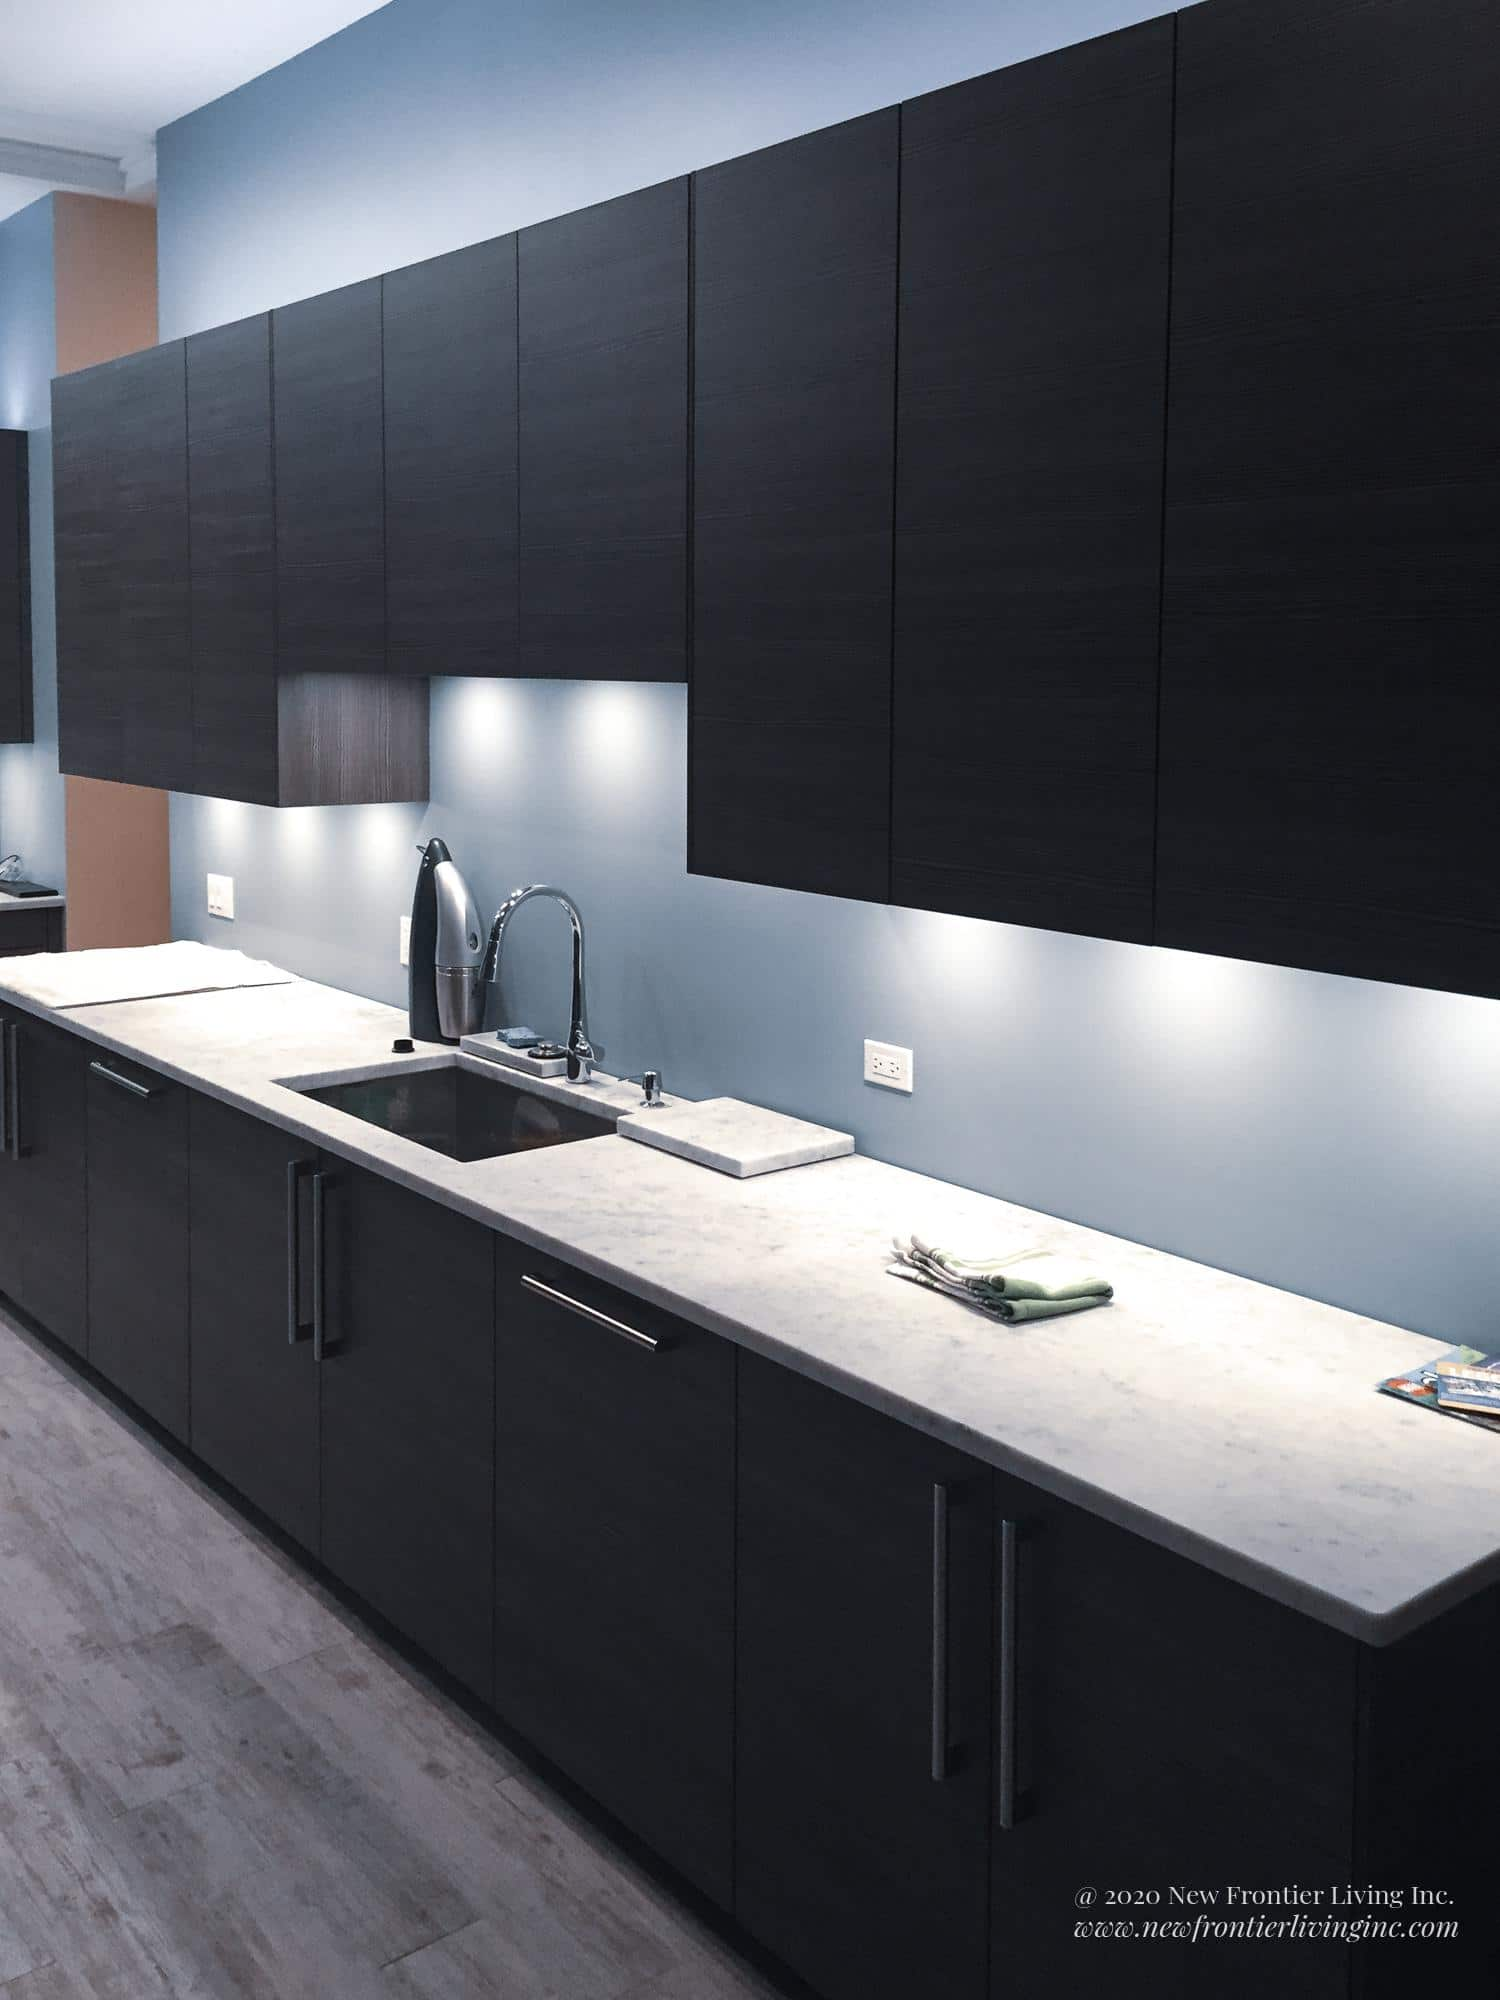 Black kitchen cabinetry and white countertop with one large sink and LED lighting